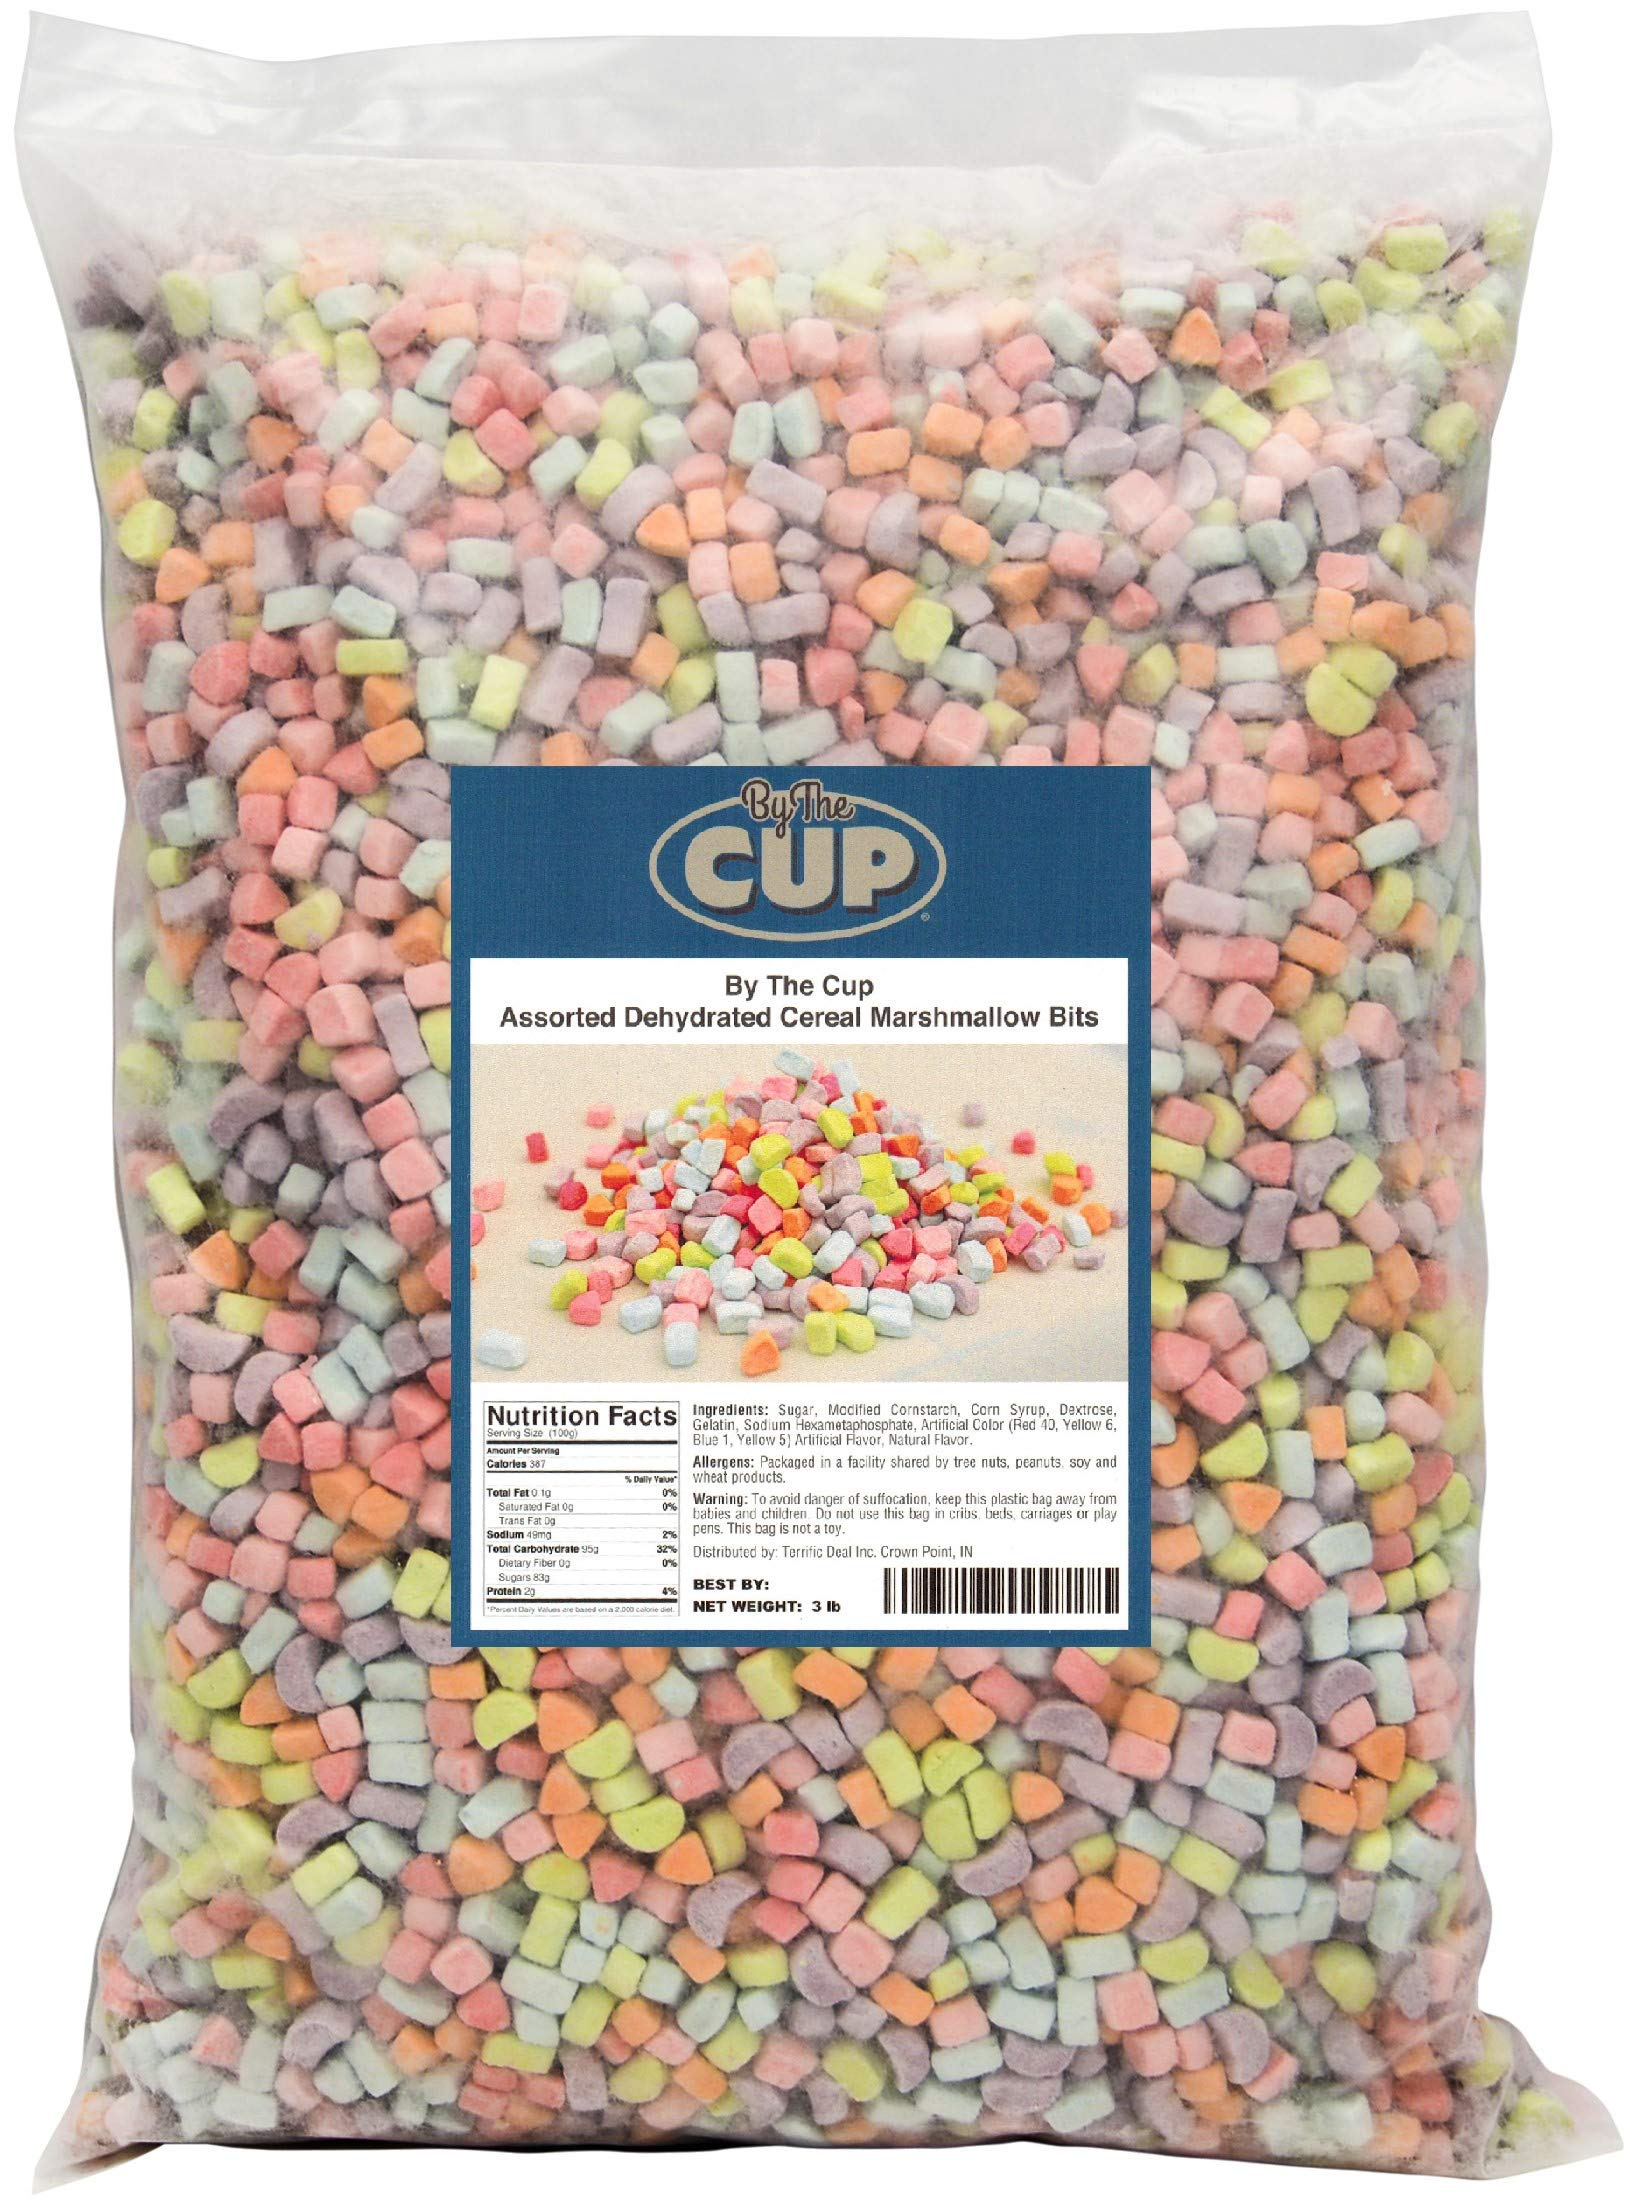 Assorted Dehydrated Cereal Marshmallow Bits 3 lb bulk bag by By The Cup